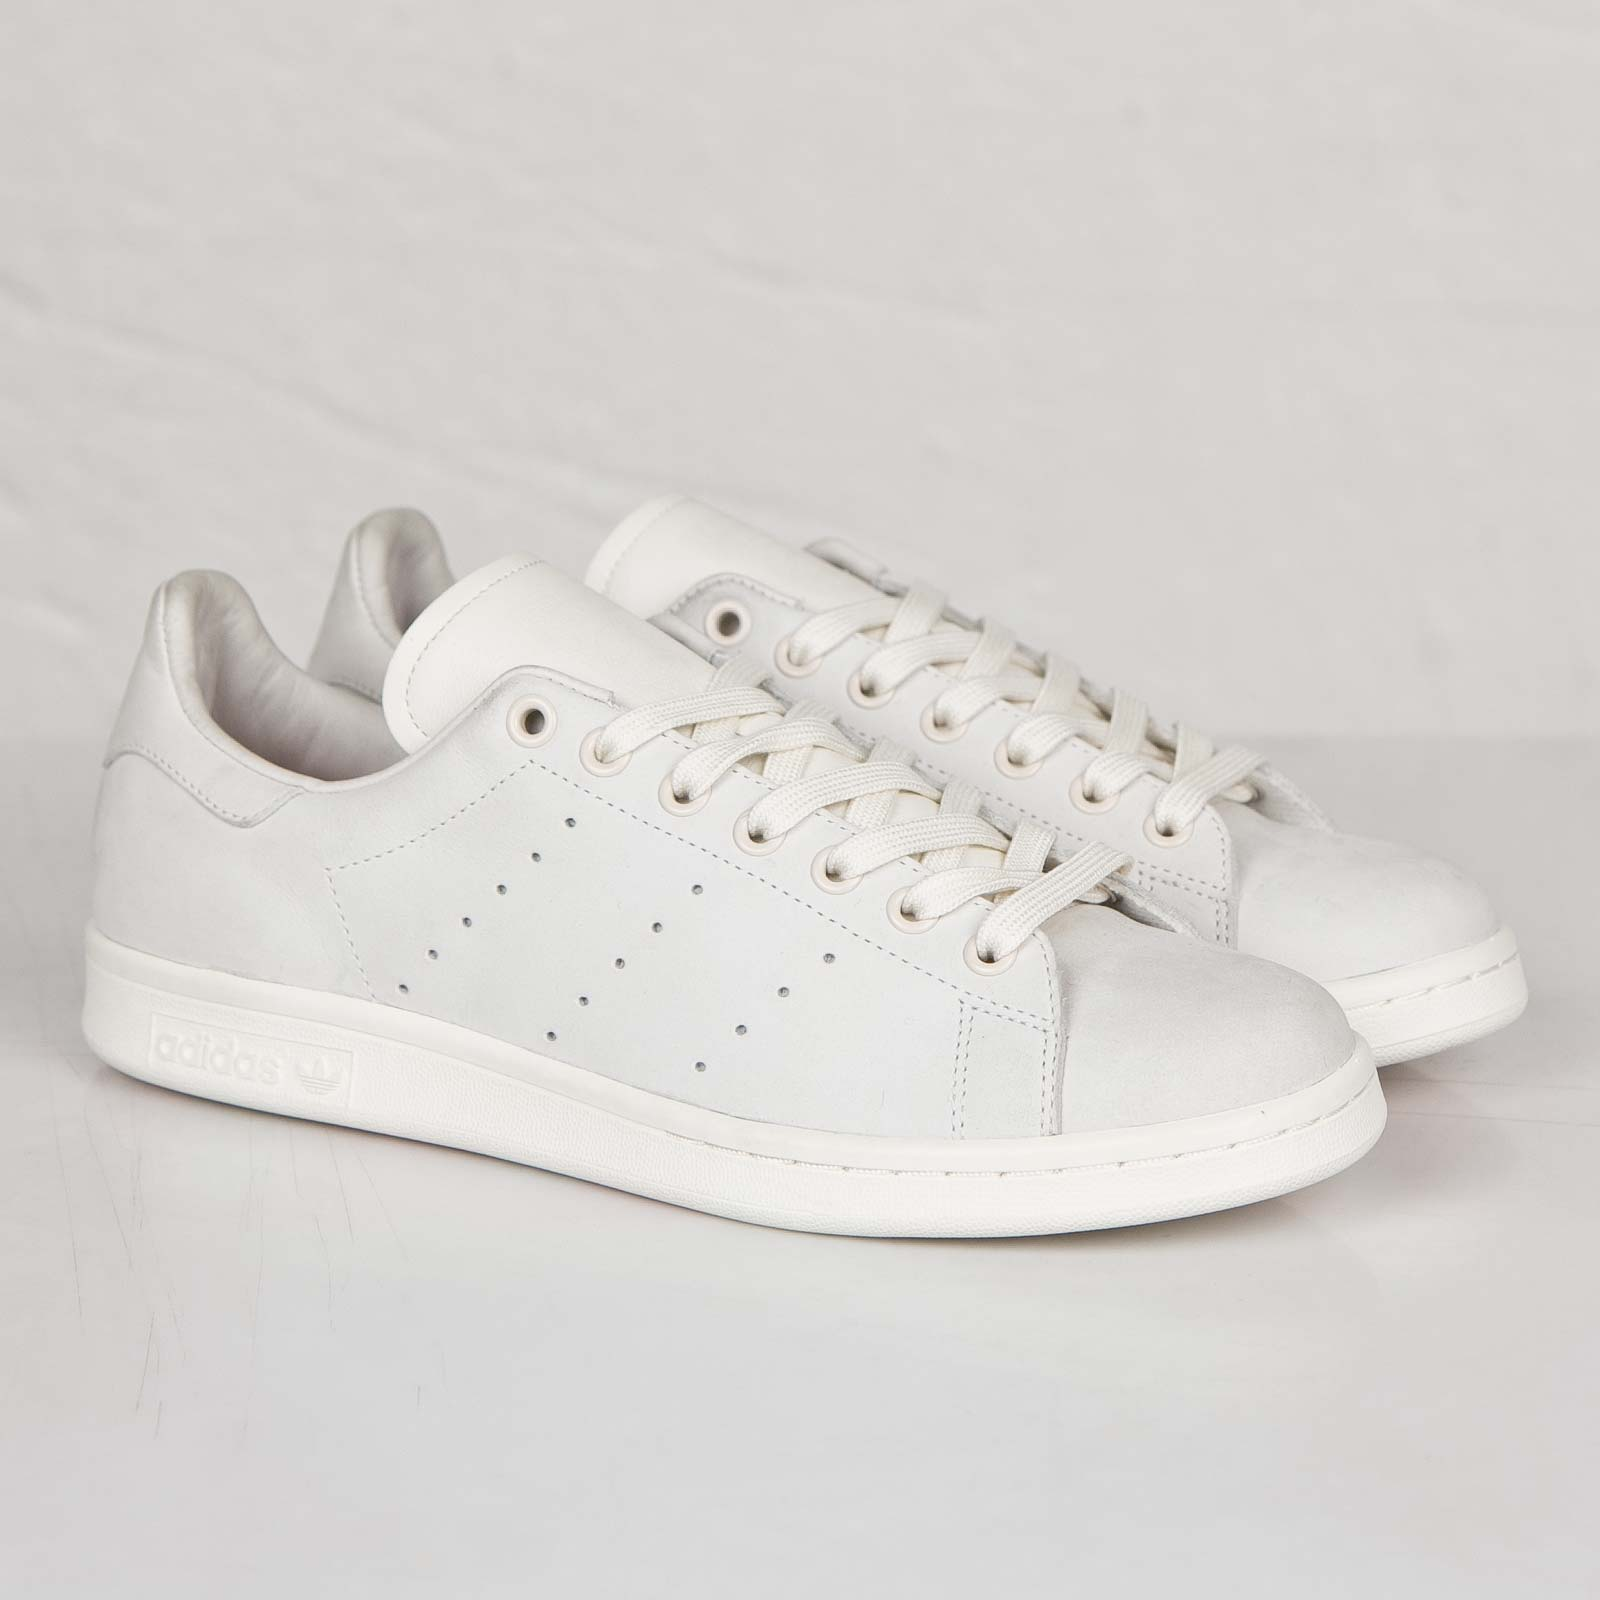 adidas Stan Smith B24346 Sneakersnstuff | sneakers